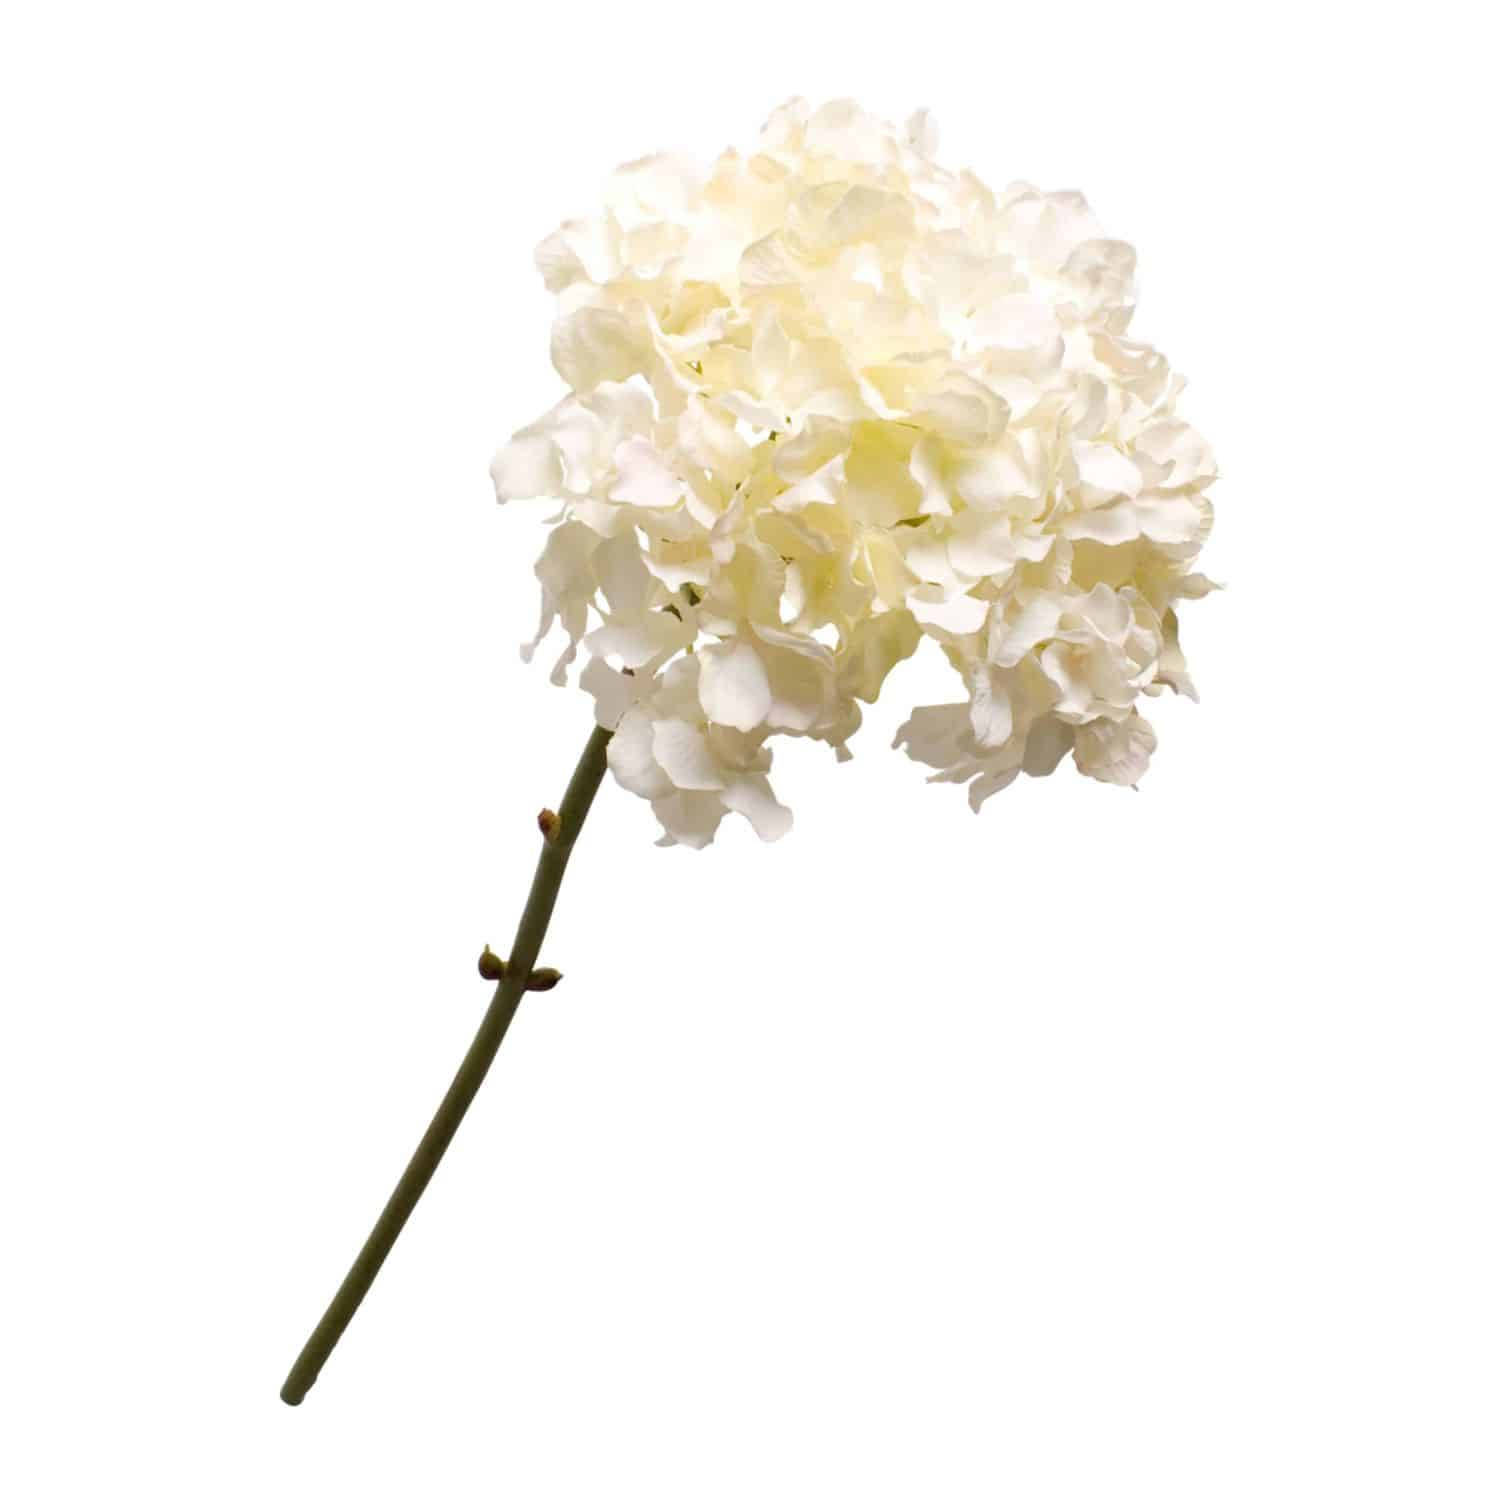 Buy faux hydrangea stem in a soft cream. Stunning arrangement in a single stem & wonderful addition to any floral display.